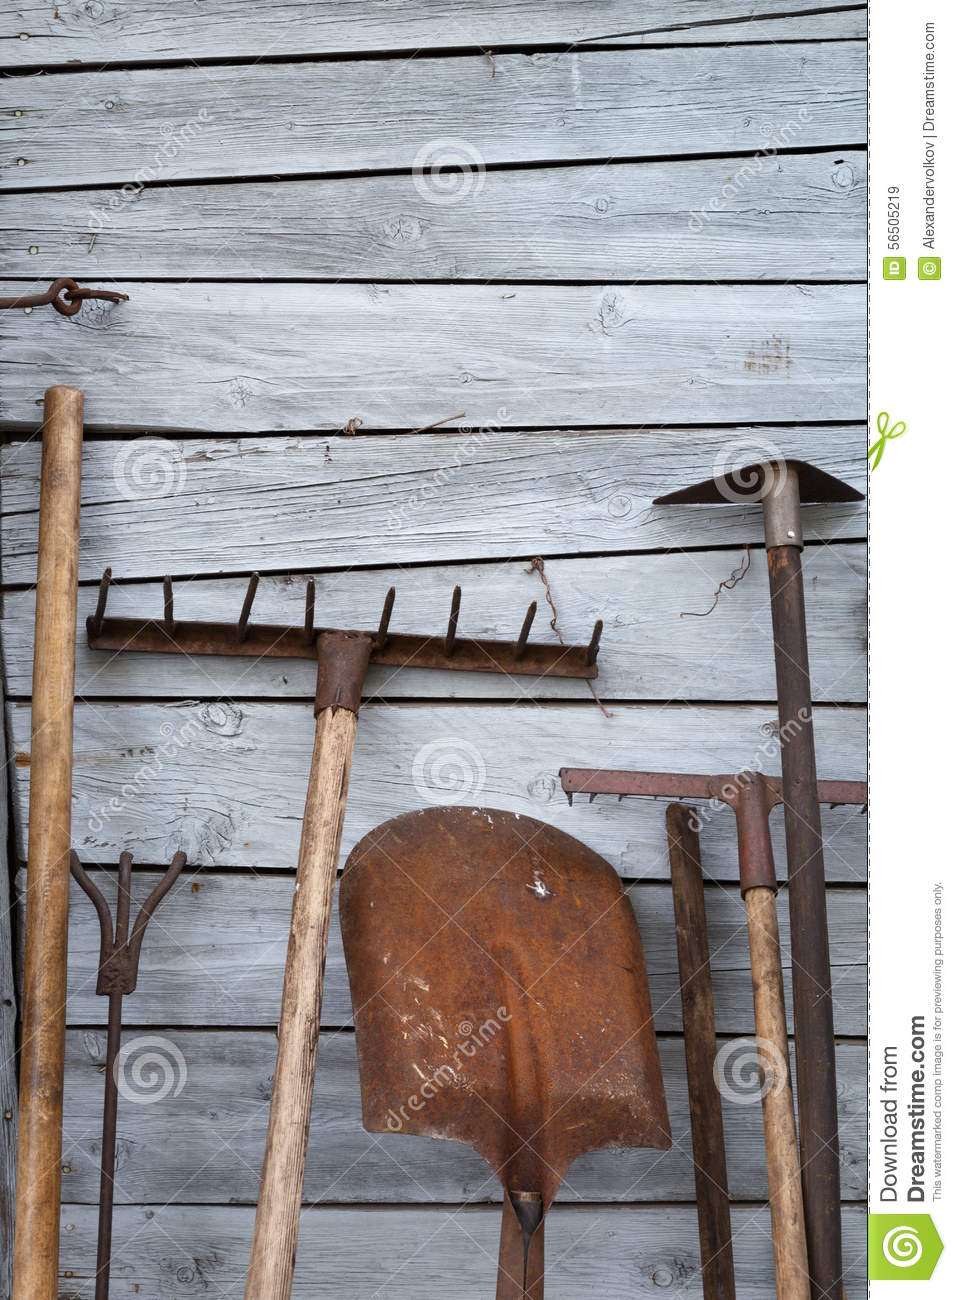 The old rusty tradition tools